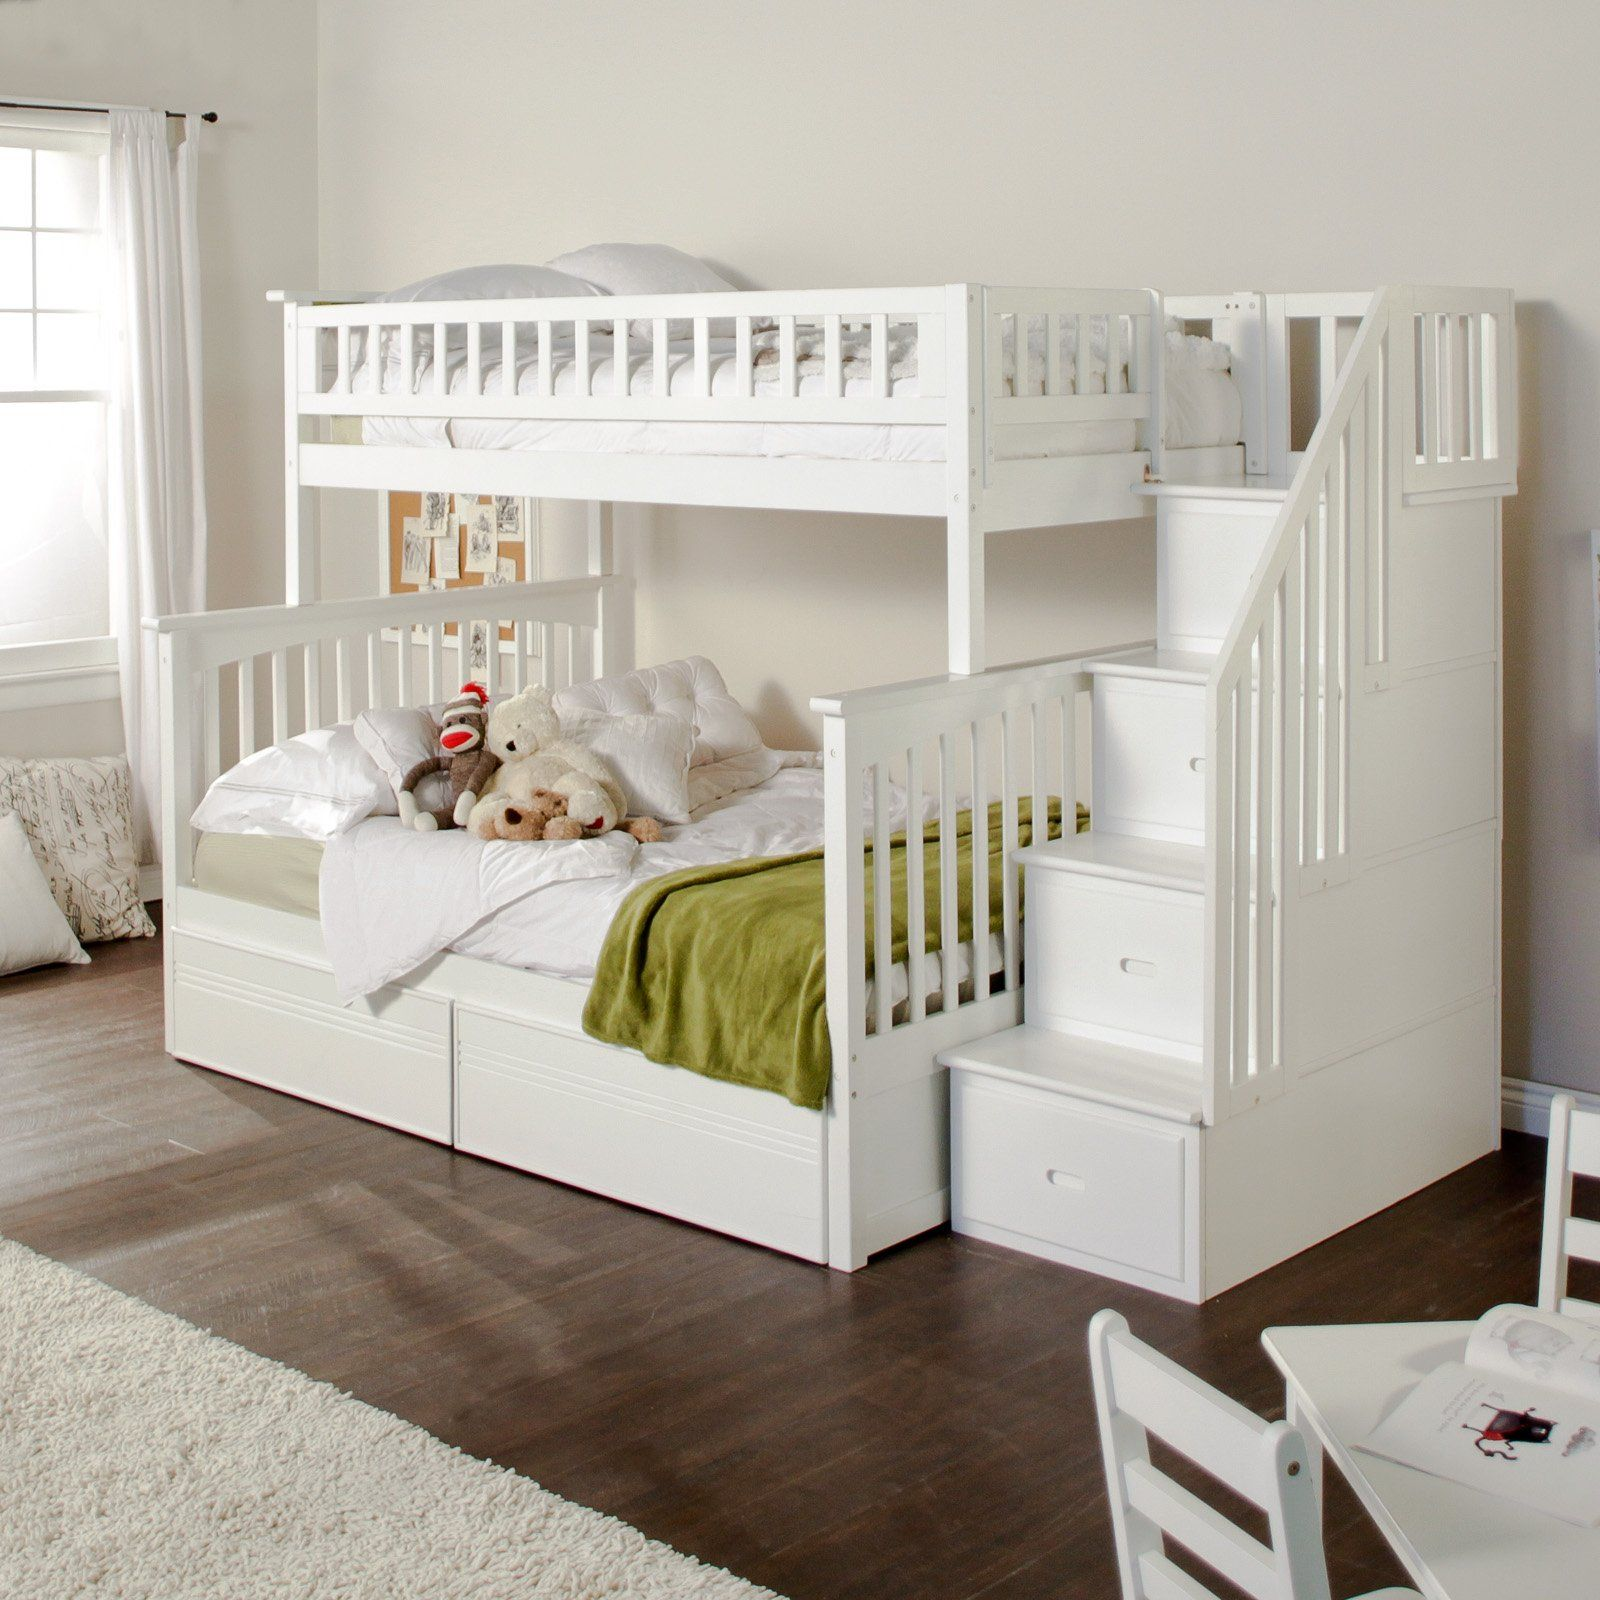 Space Saving Bunk Bed Impressive 30 Space Saving Beds For Small Rooms  Bunk Bed Stairways And Design Ideas